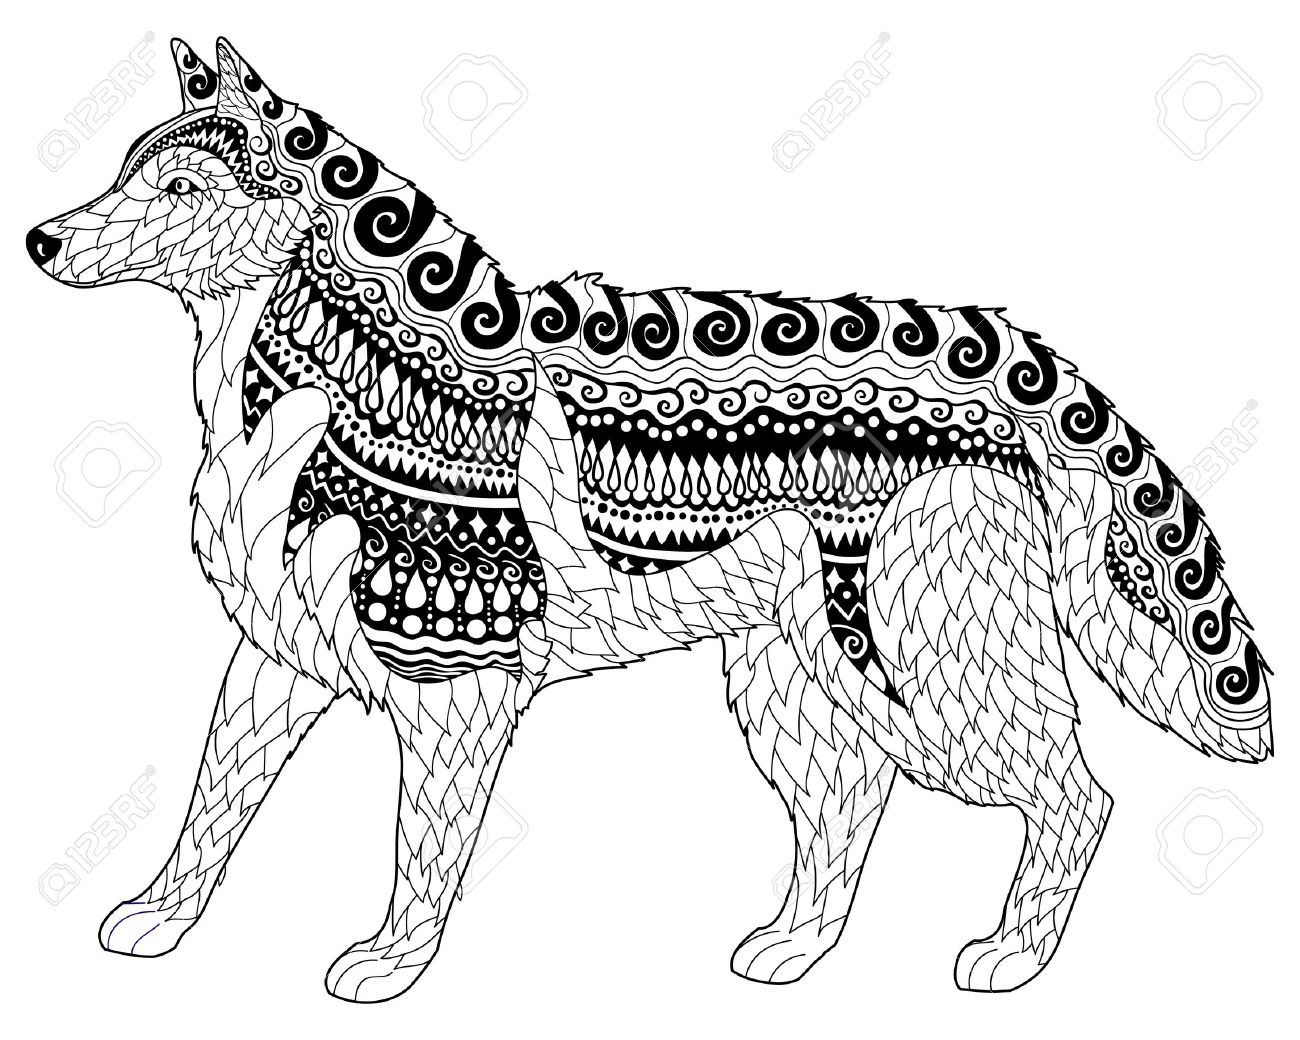 Siberian husky with high details. Adult antistress or children coloring page with dog. Hand drawn animal doodle. Sketch for tattoo, poster, print, t-shirt in style. Vector illustration - 52343865